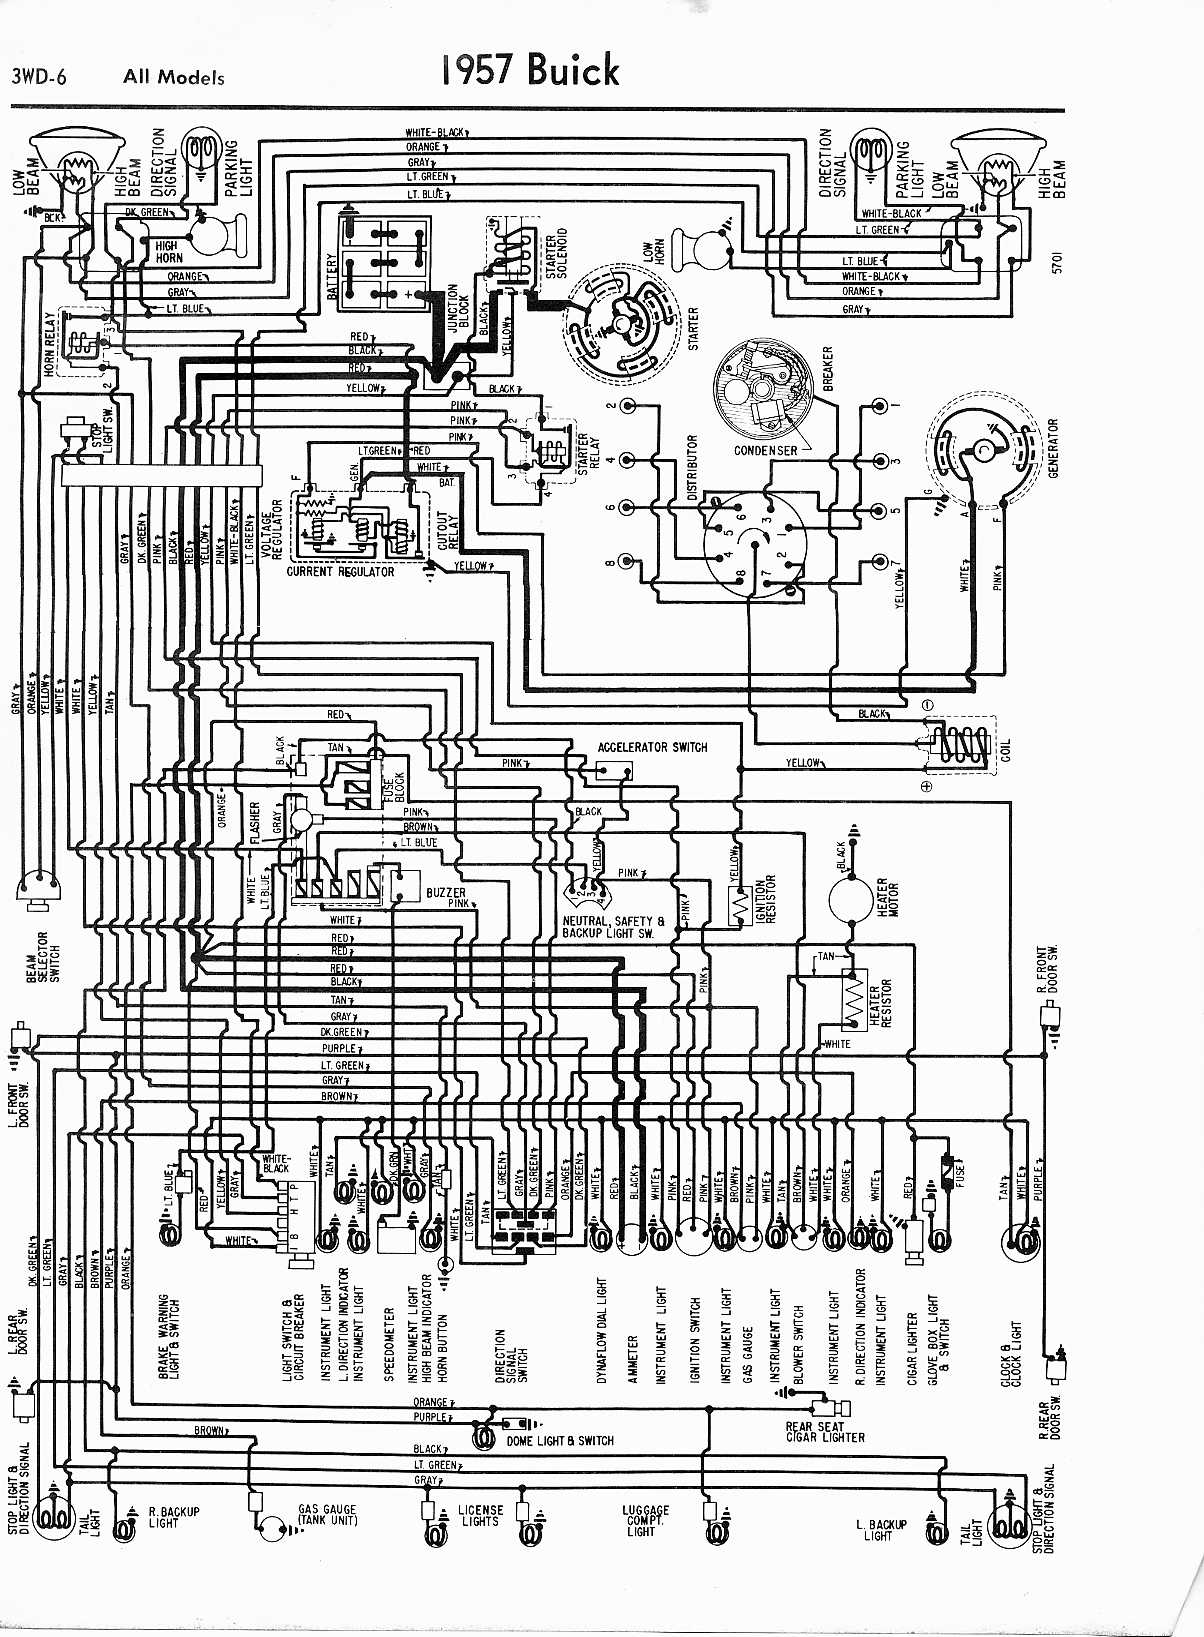 old car wiring diagrams for chevy old circuit and images 1942 99 chevy blazer radiator furthermore 1976 buick 225 electra 455 engine